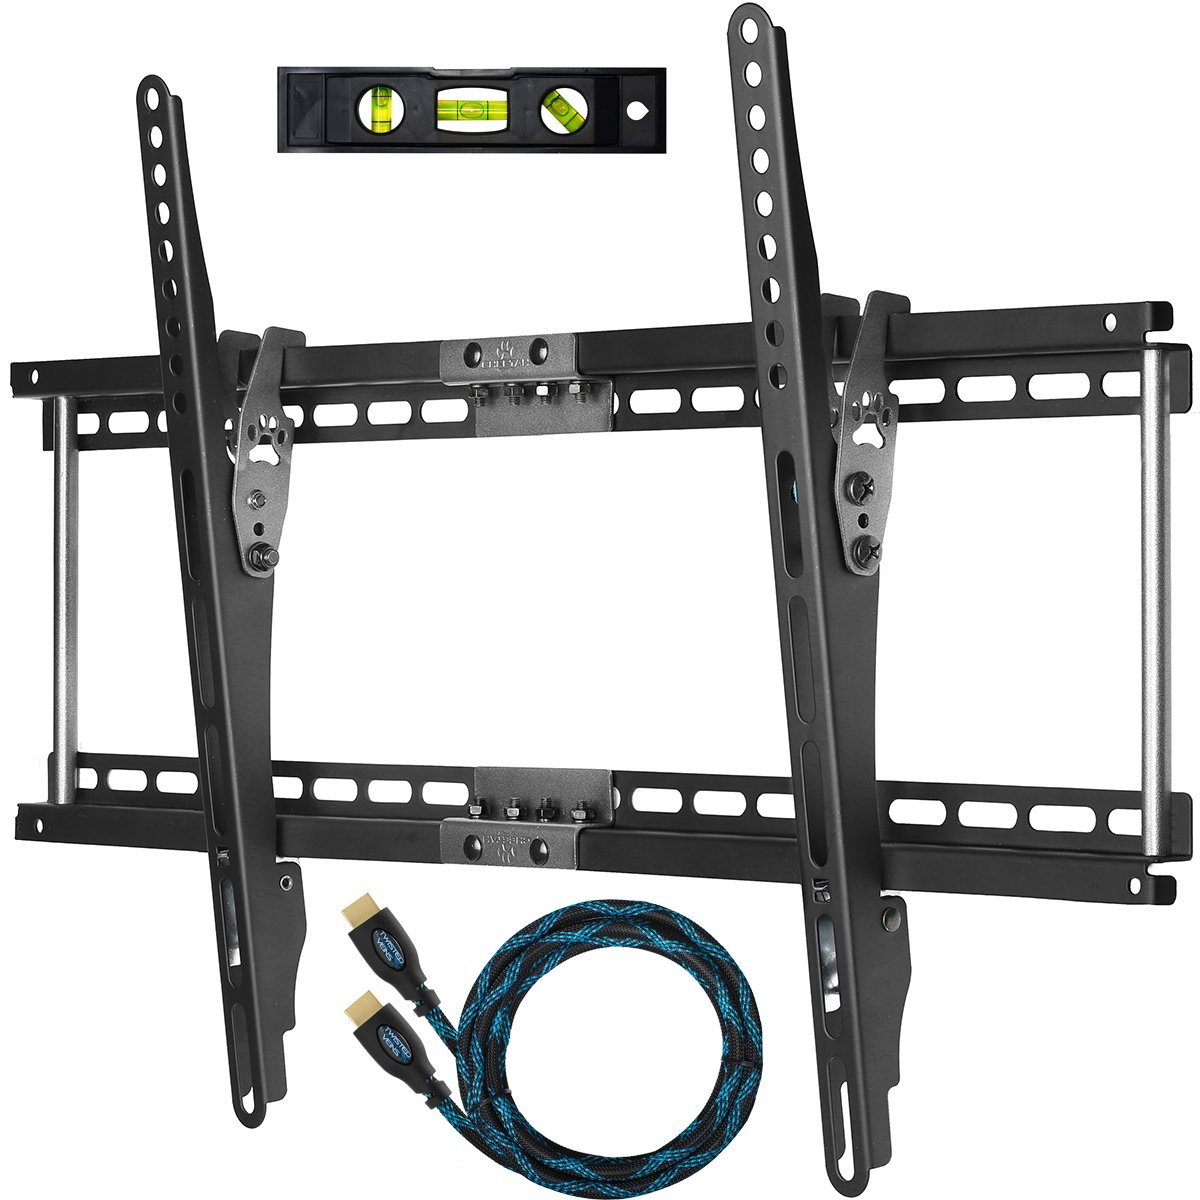 Top 10 best tv ceilings wall mounts for flat screen monitor in 2017 reviews vuthasurf - Tv wall mount reviews ...